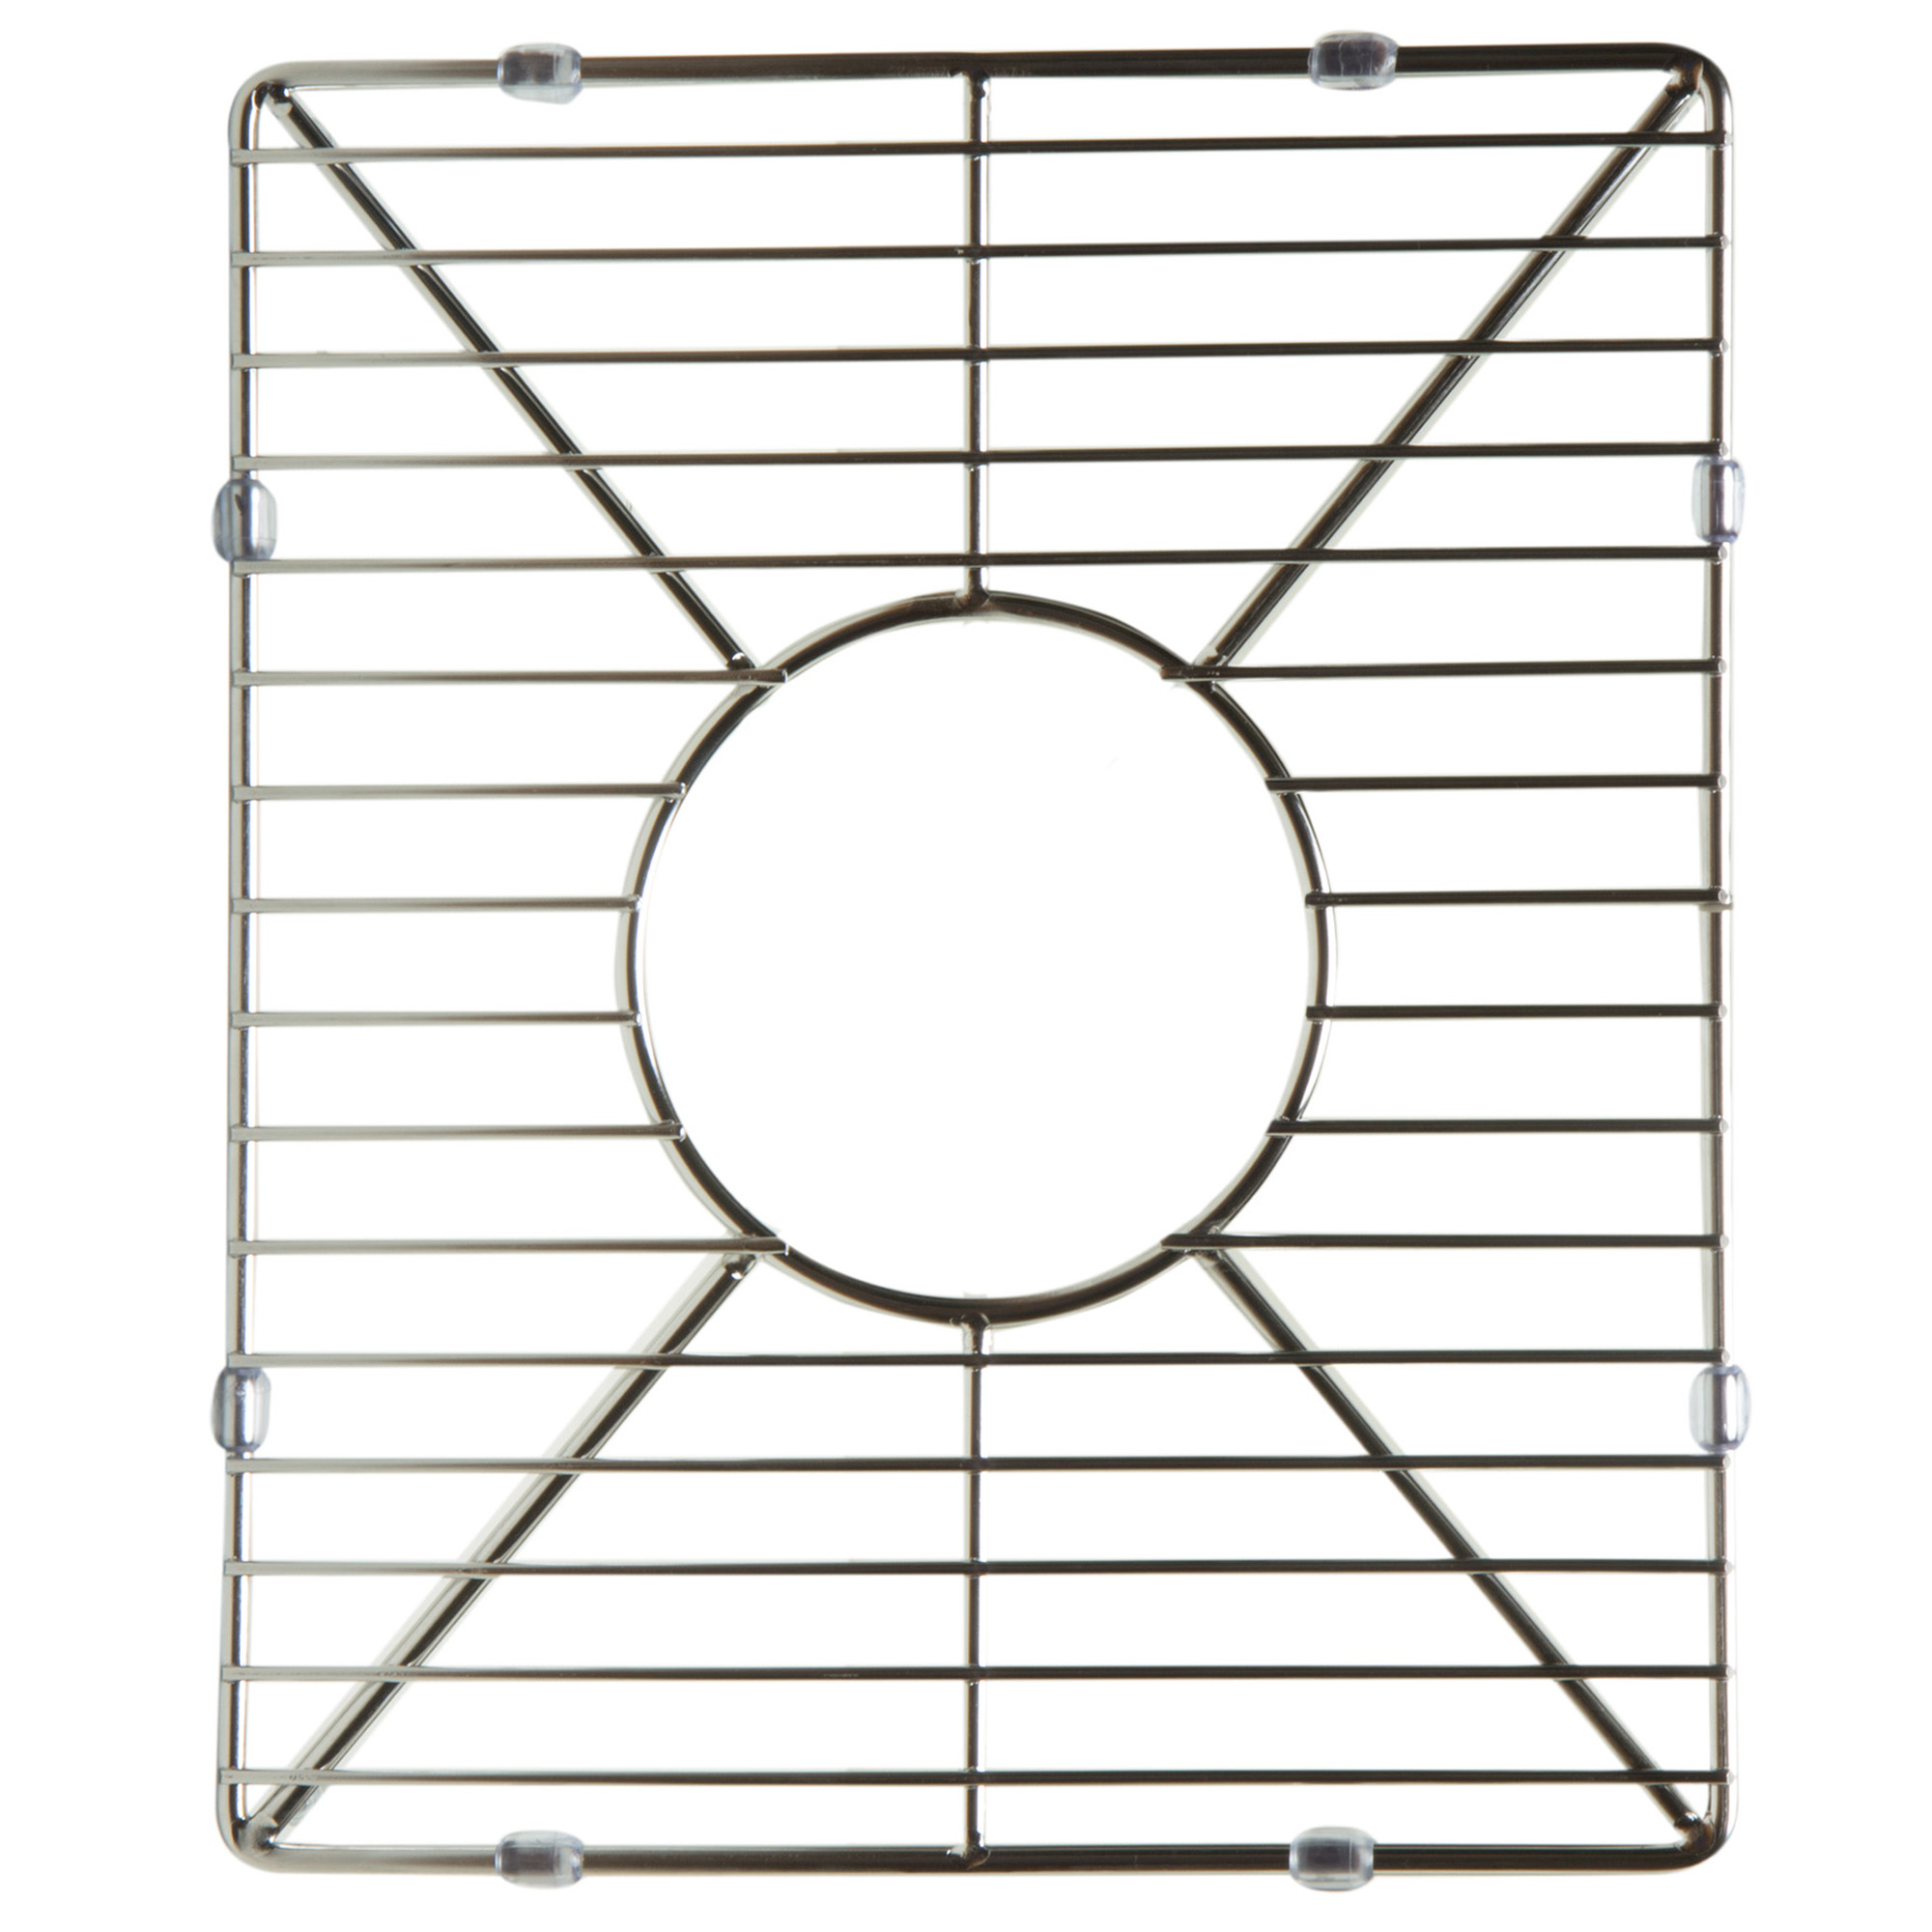 ALFI Brand ABGR3618S Stainless Steel Kitchen Sink Grid for small side